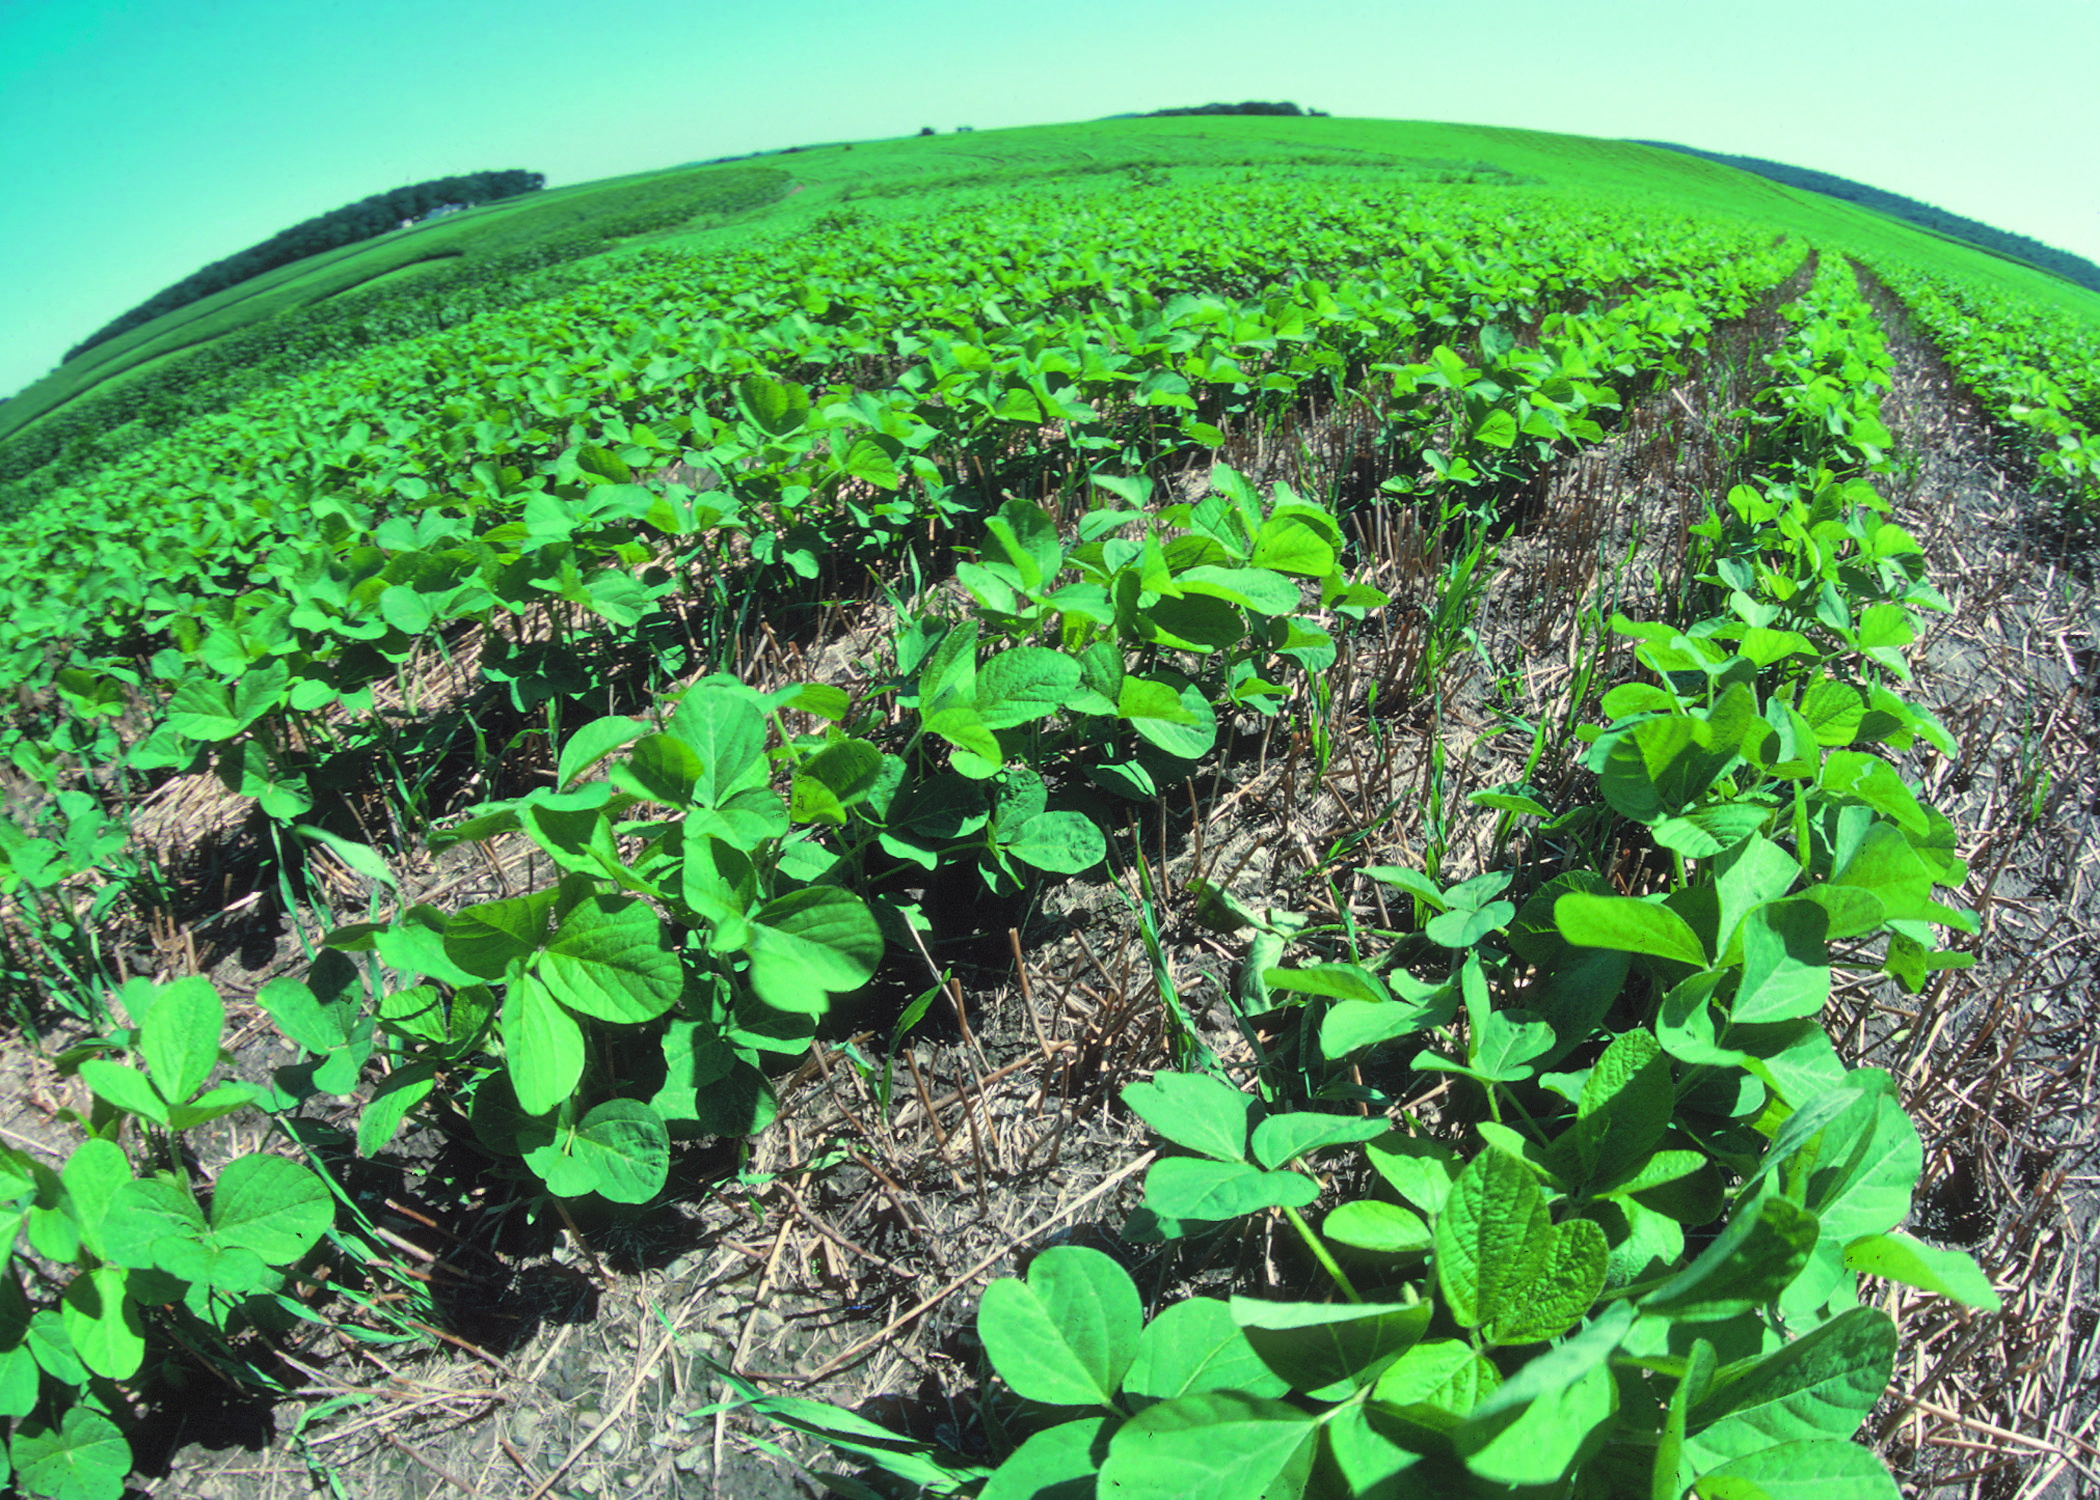 Soy beans in a no-till field (Credit: US Department of Agriculture)